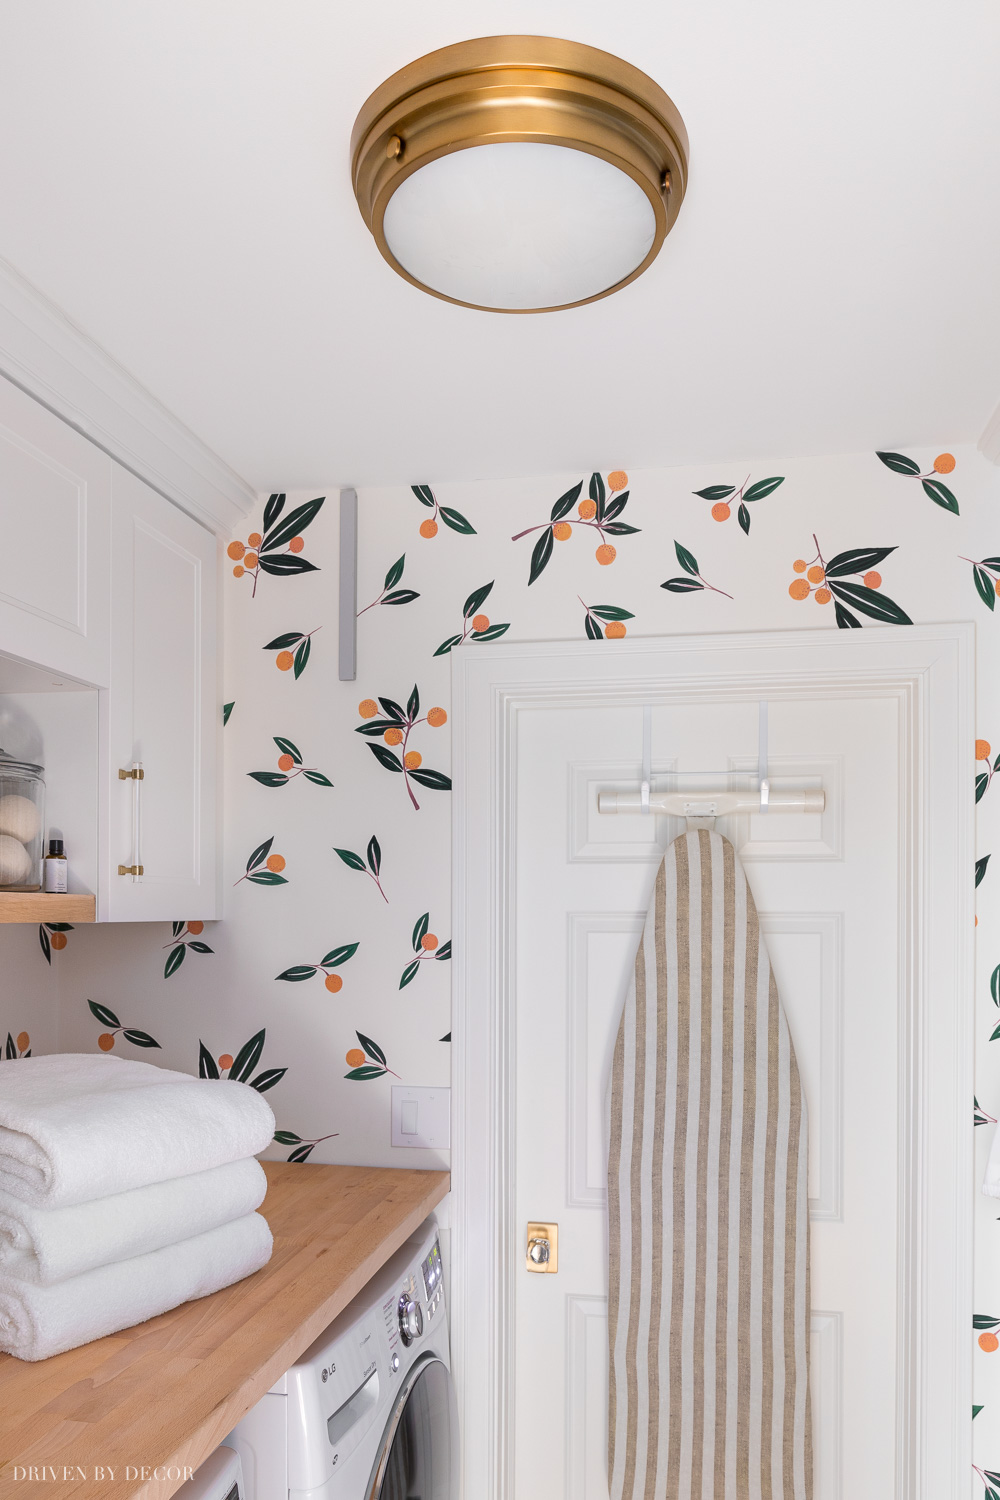 Love this simple but stylish flush mount ceiling light in our laundry room!